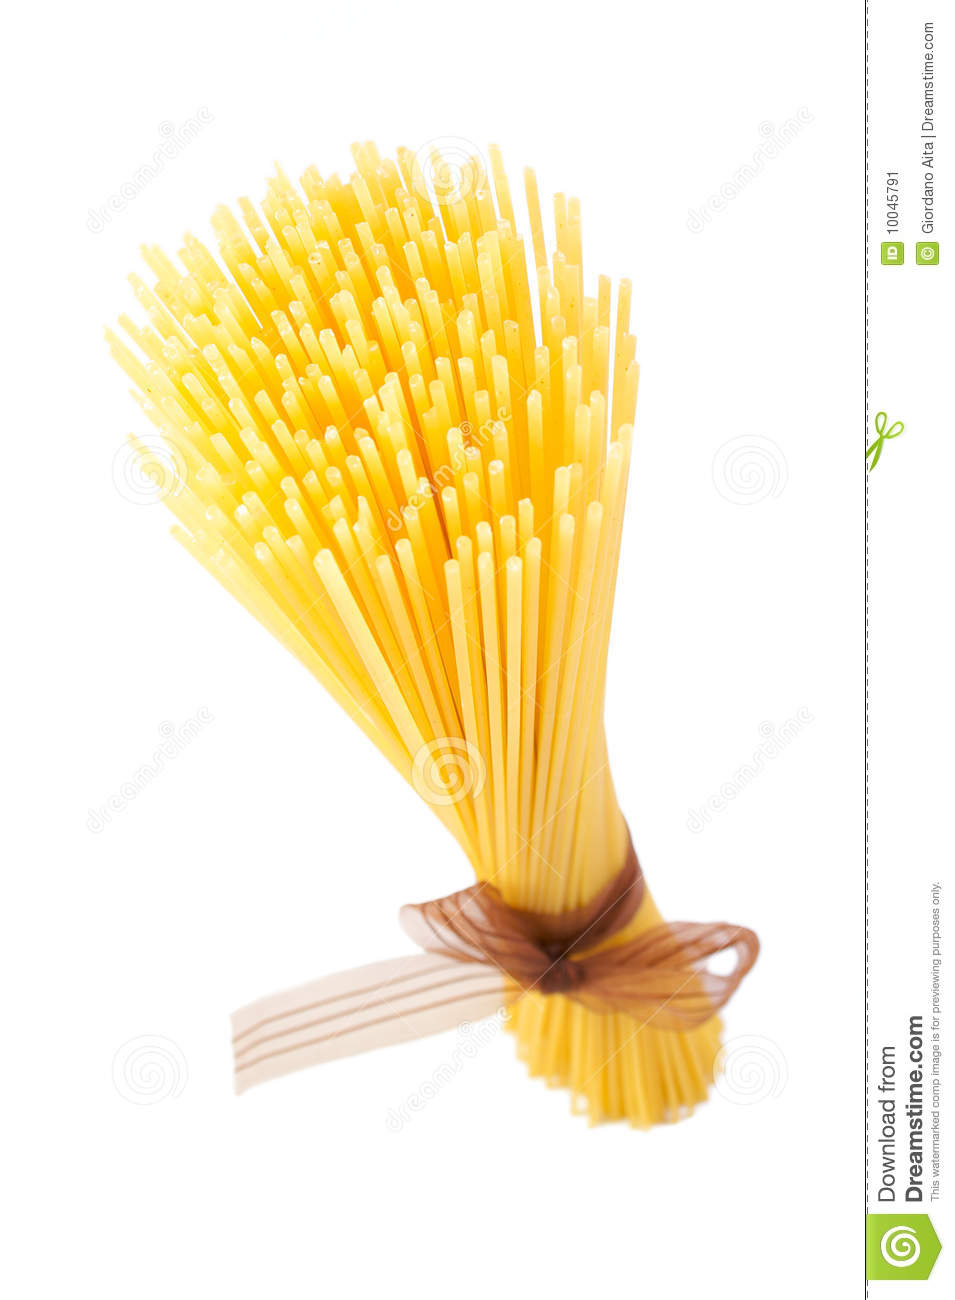 Download Pasta - spaghetti stock image. Image of nutrition, diet - 10045791